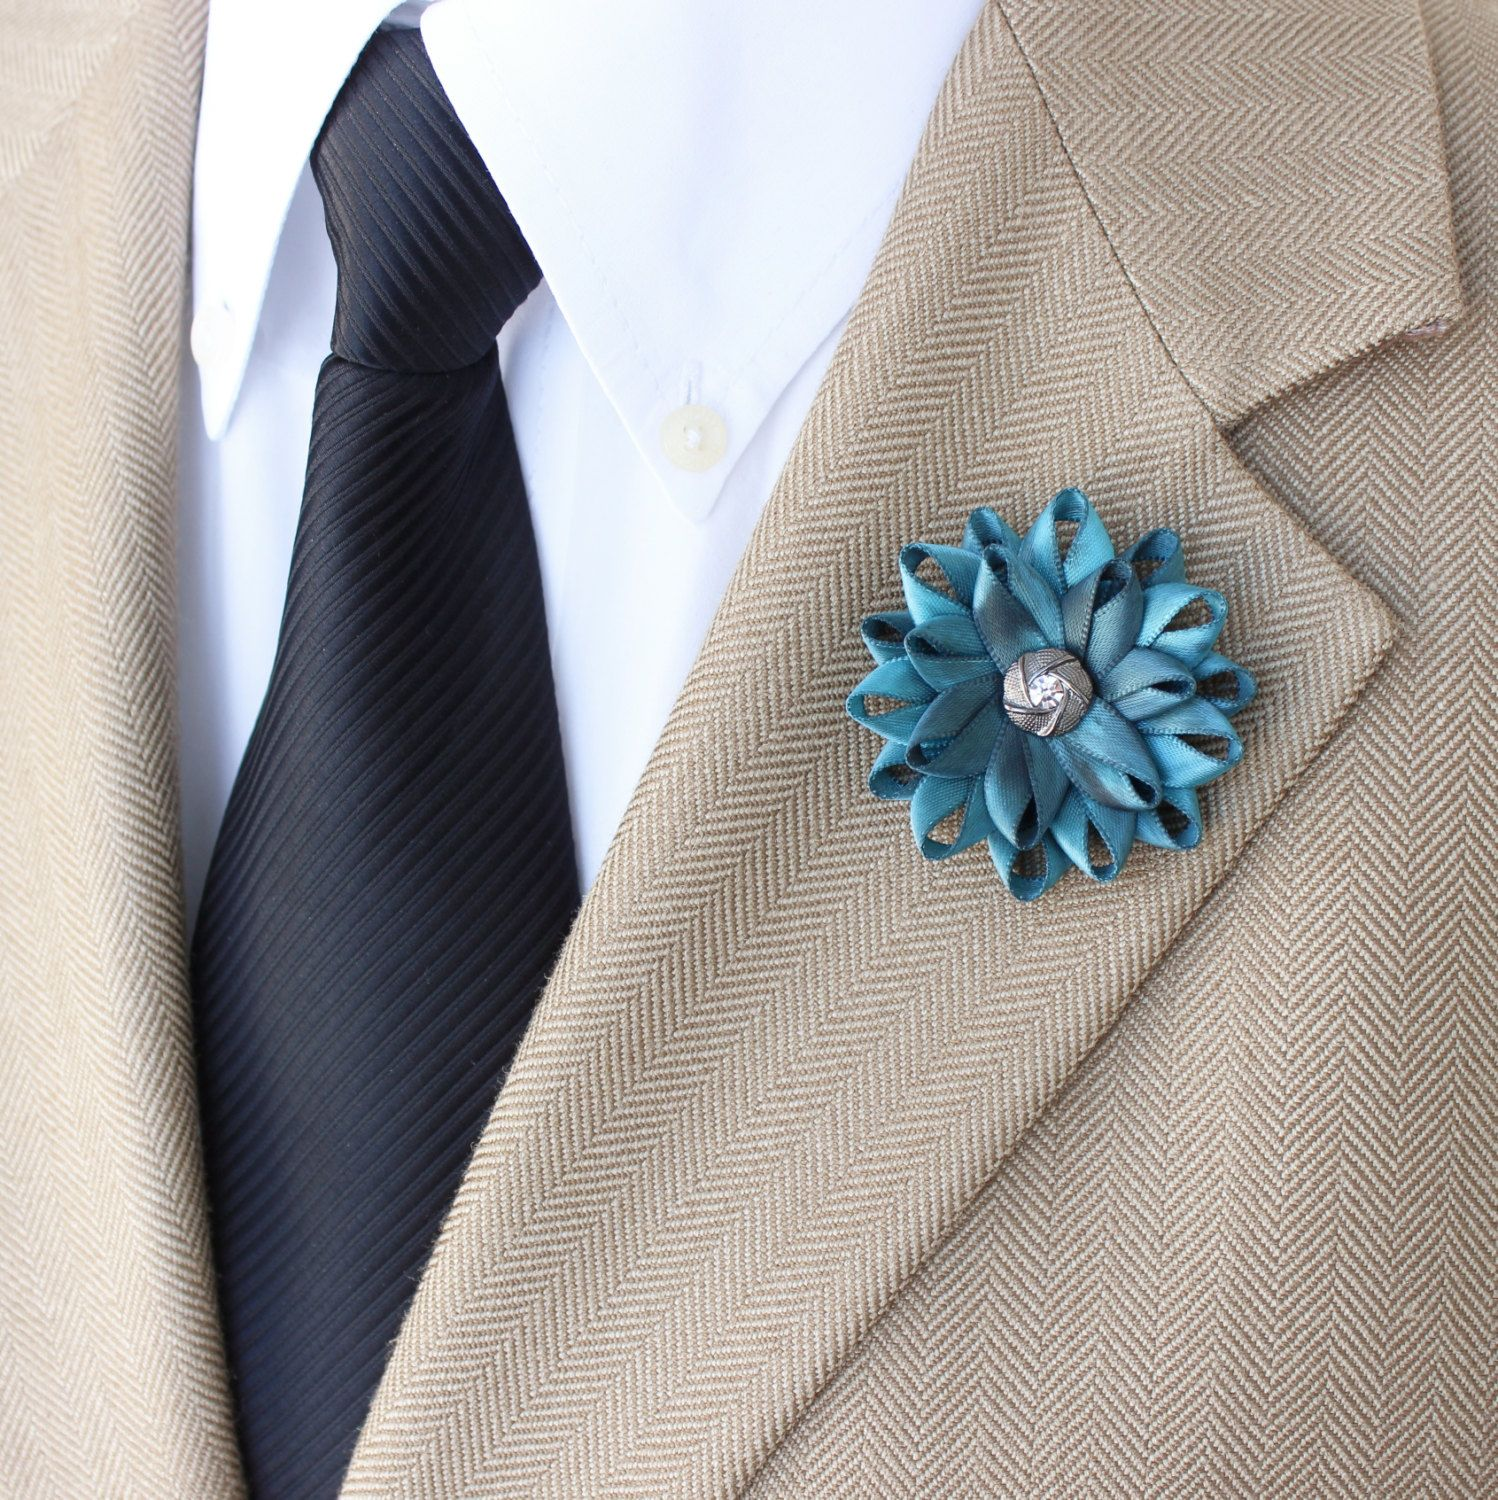 Mens Fashion Mens Lapel Flower Teal Lapel Flower for Men Gift for Him Teal Boutonniere Mens Flower Unique Lapel Flower Mens Lapel Pin